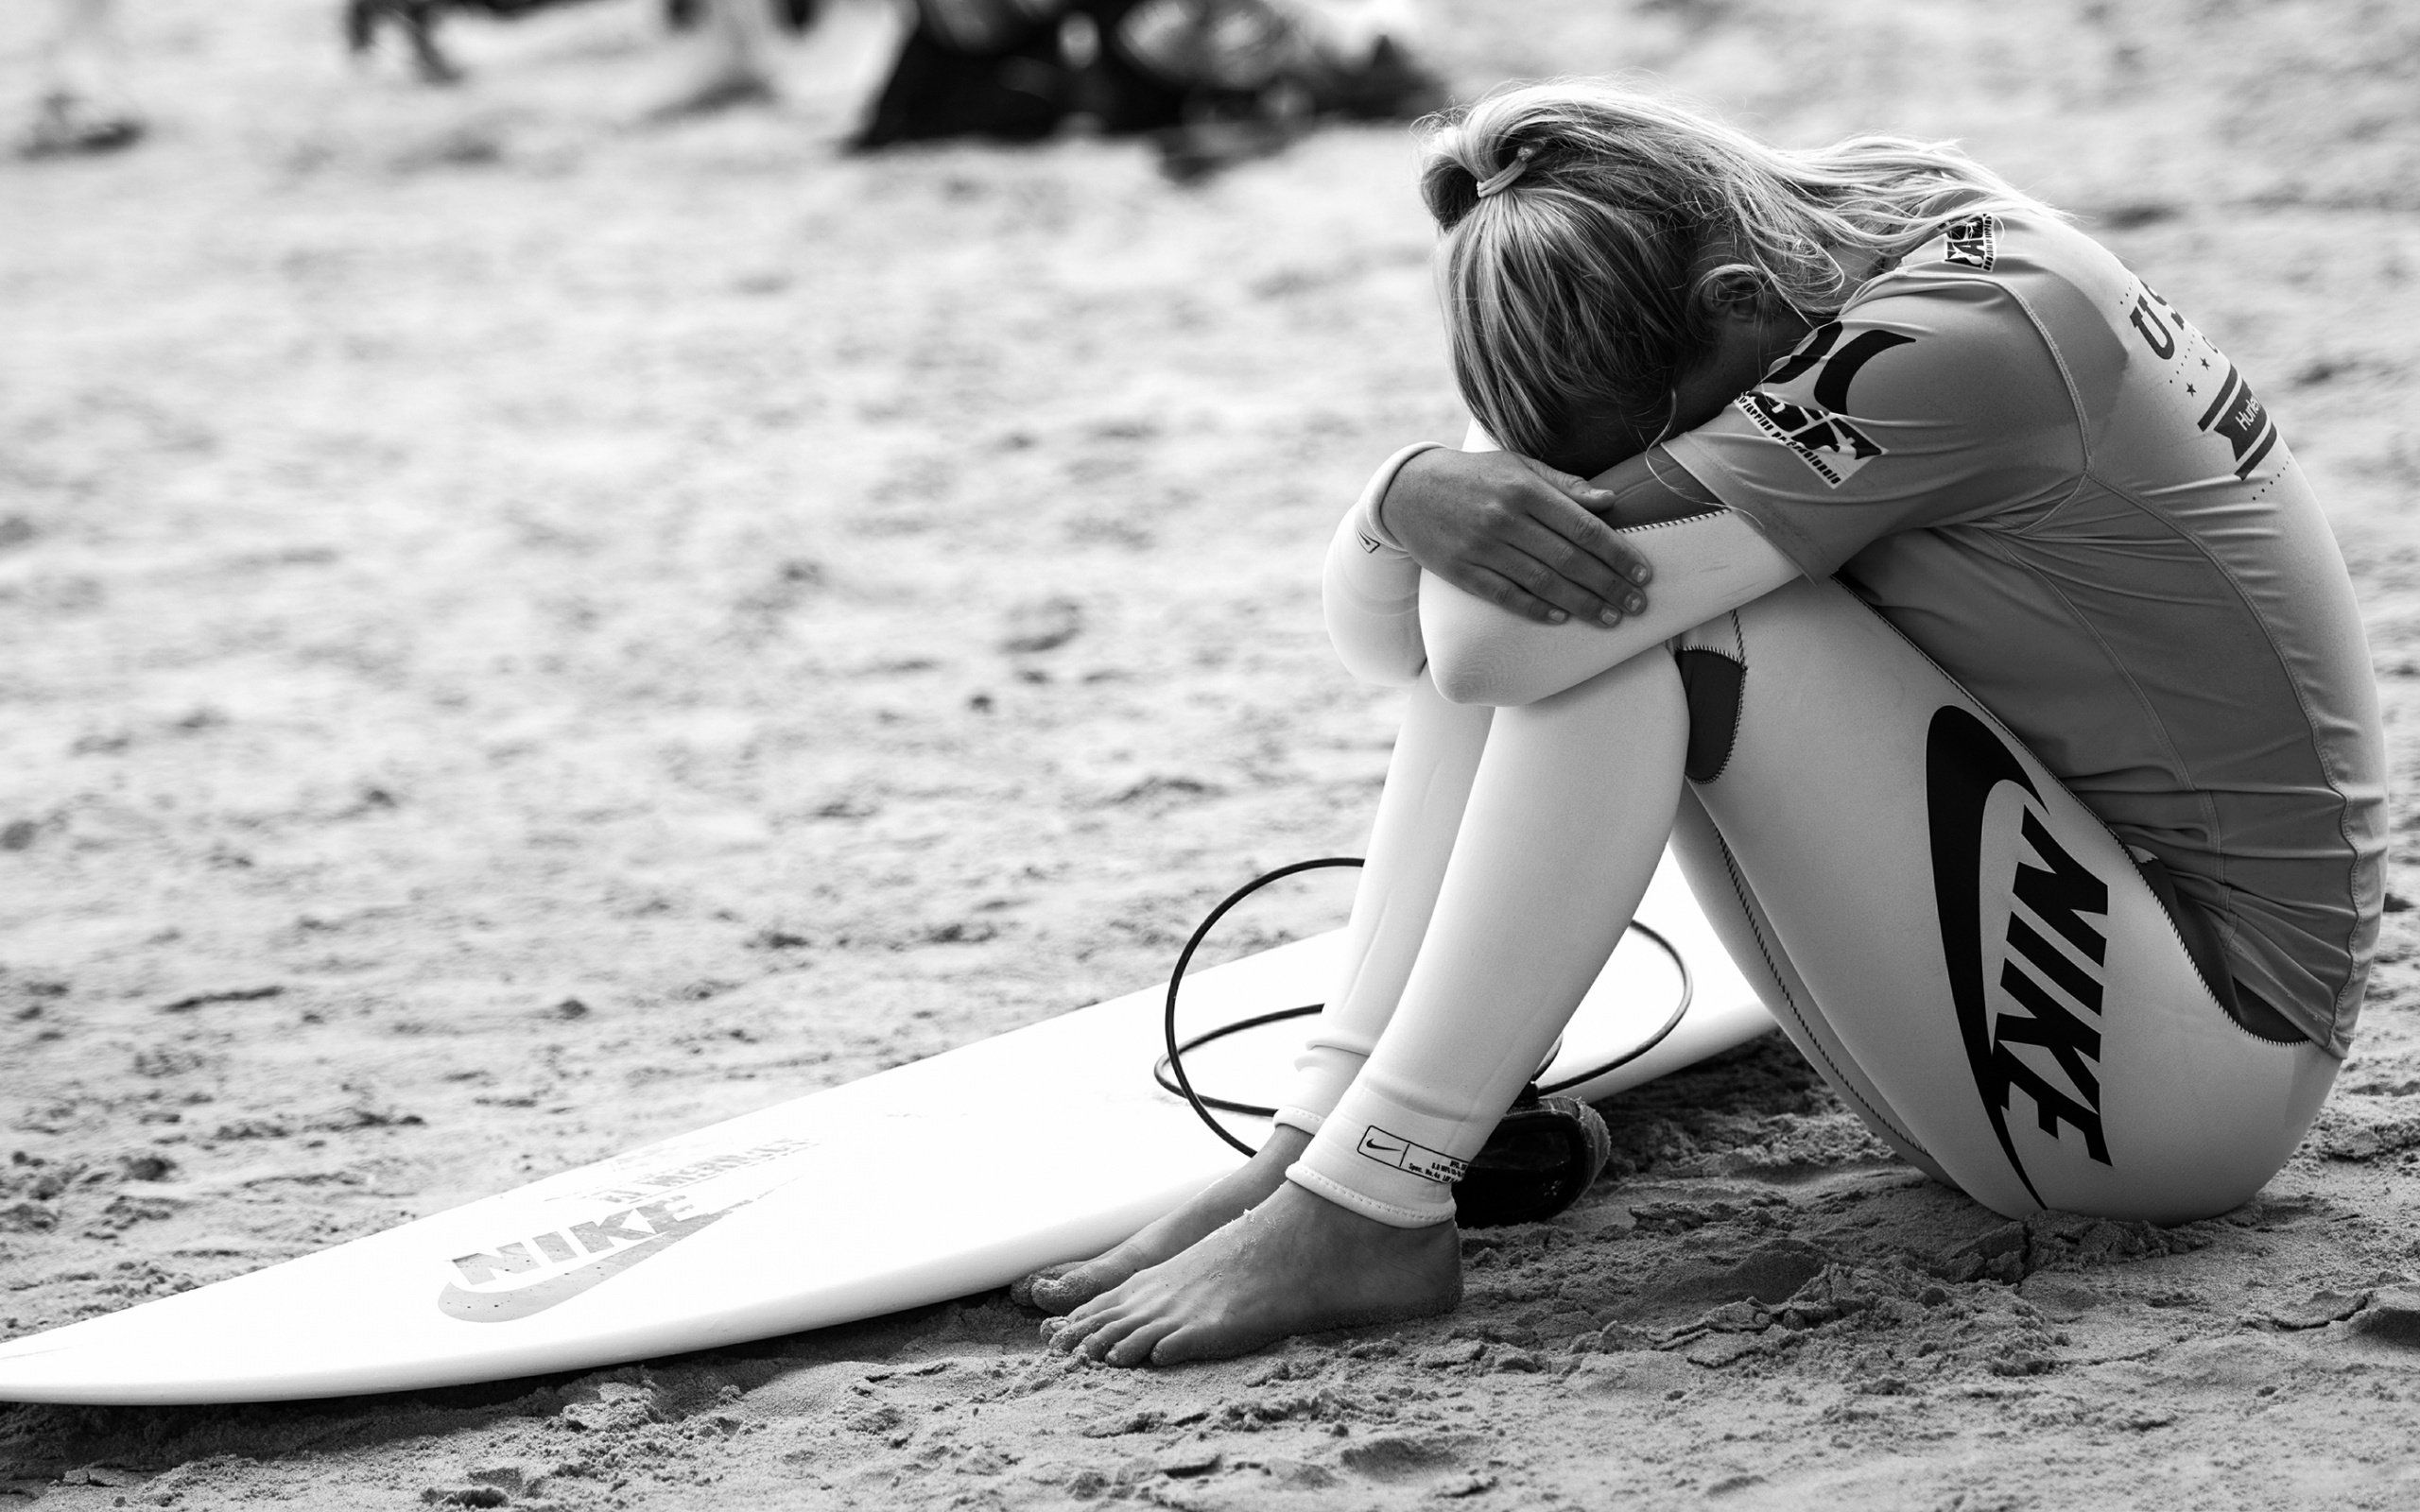 Surfing girl concentrate